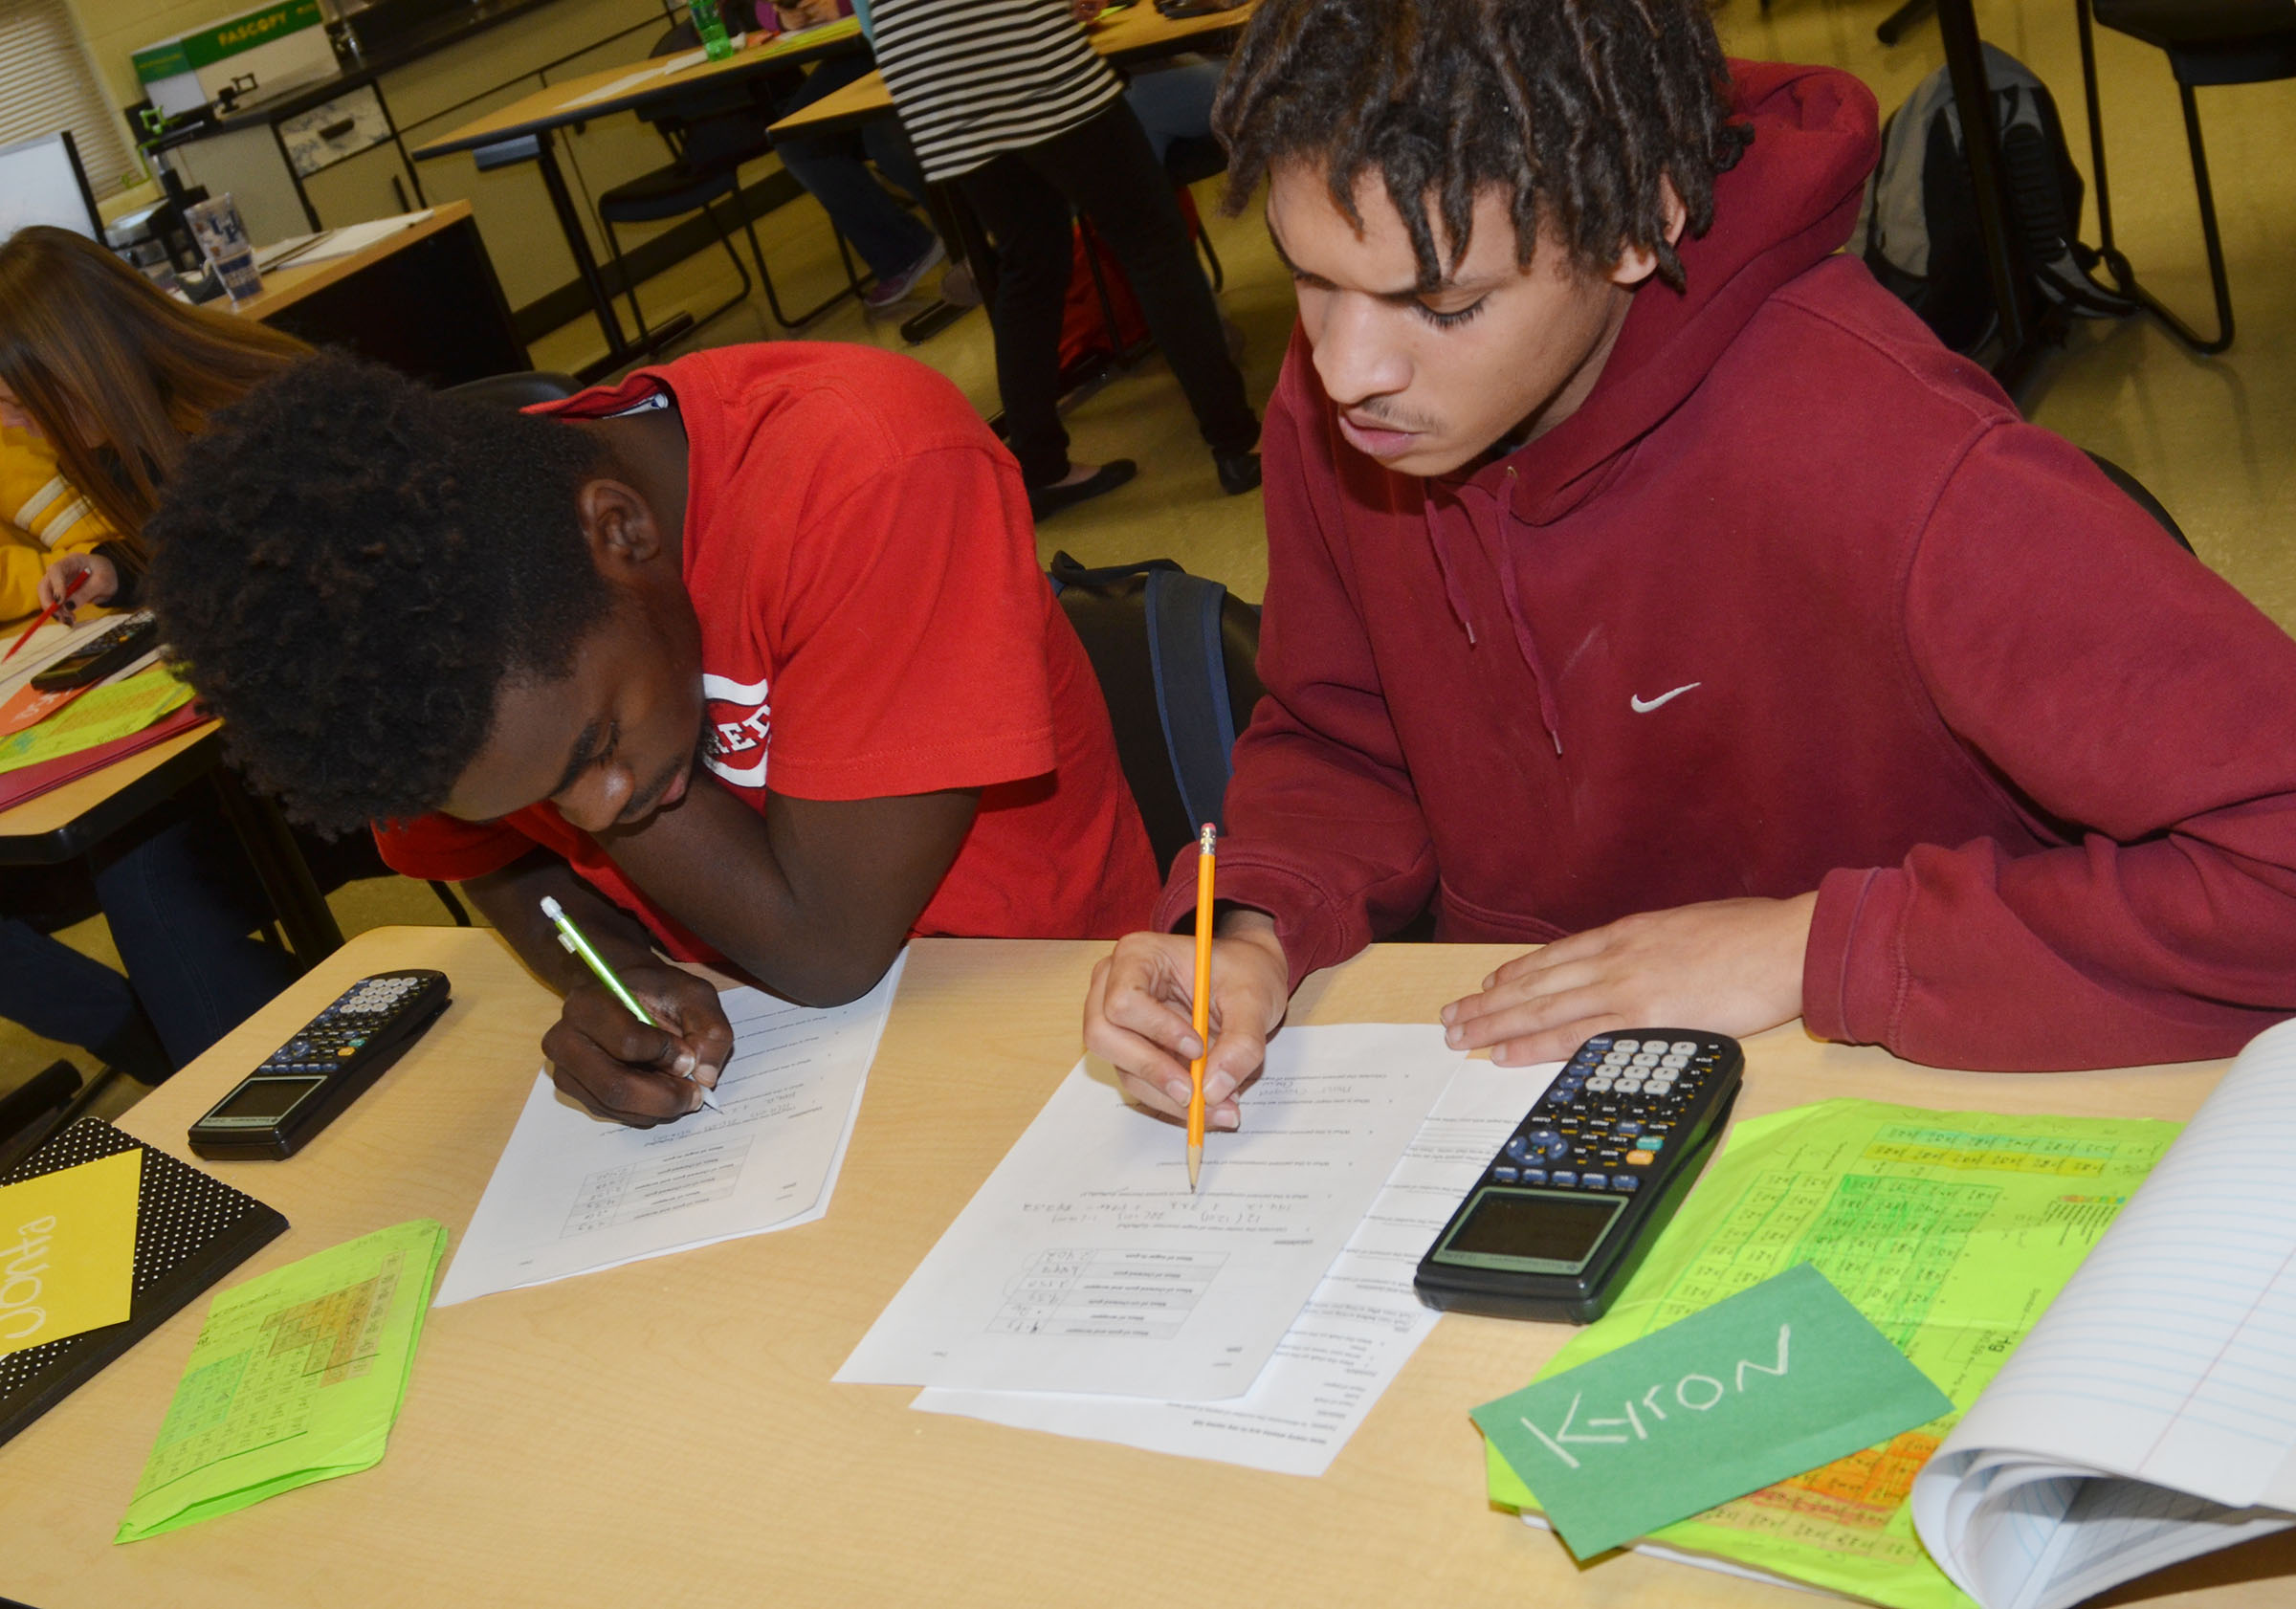 CHS junior Jonta' Strawther, at left, and senior Kyron Statham work together on their lab questions.